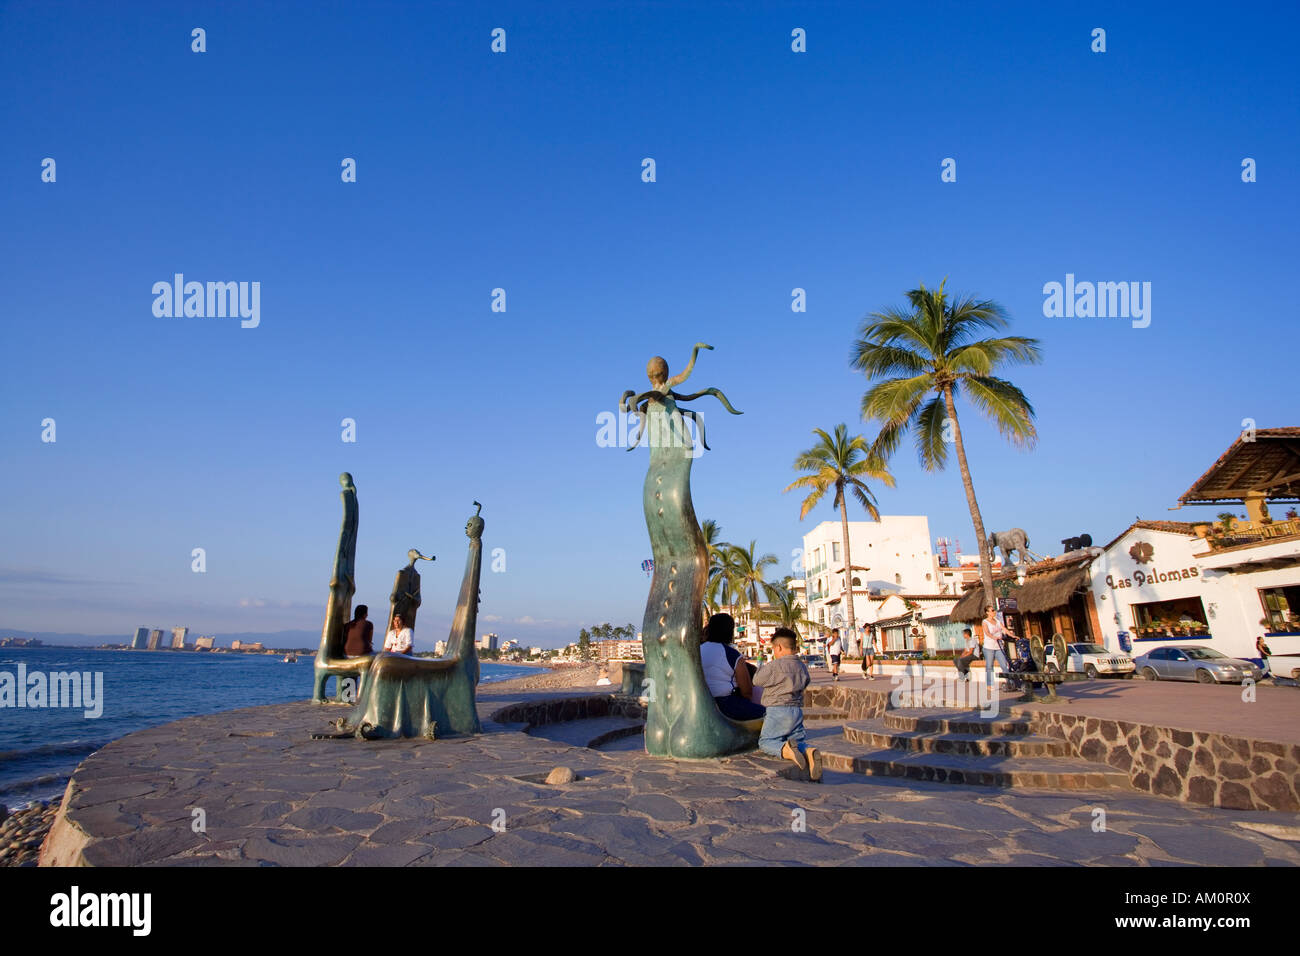 Statues Along Malecon Boardwalk In Puerto Vallarta Mexico